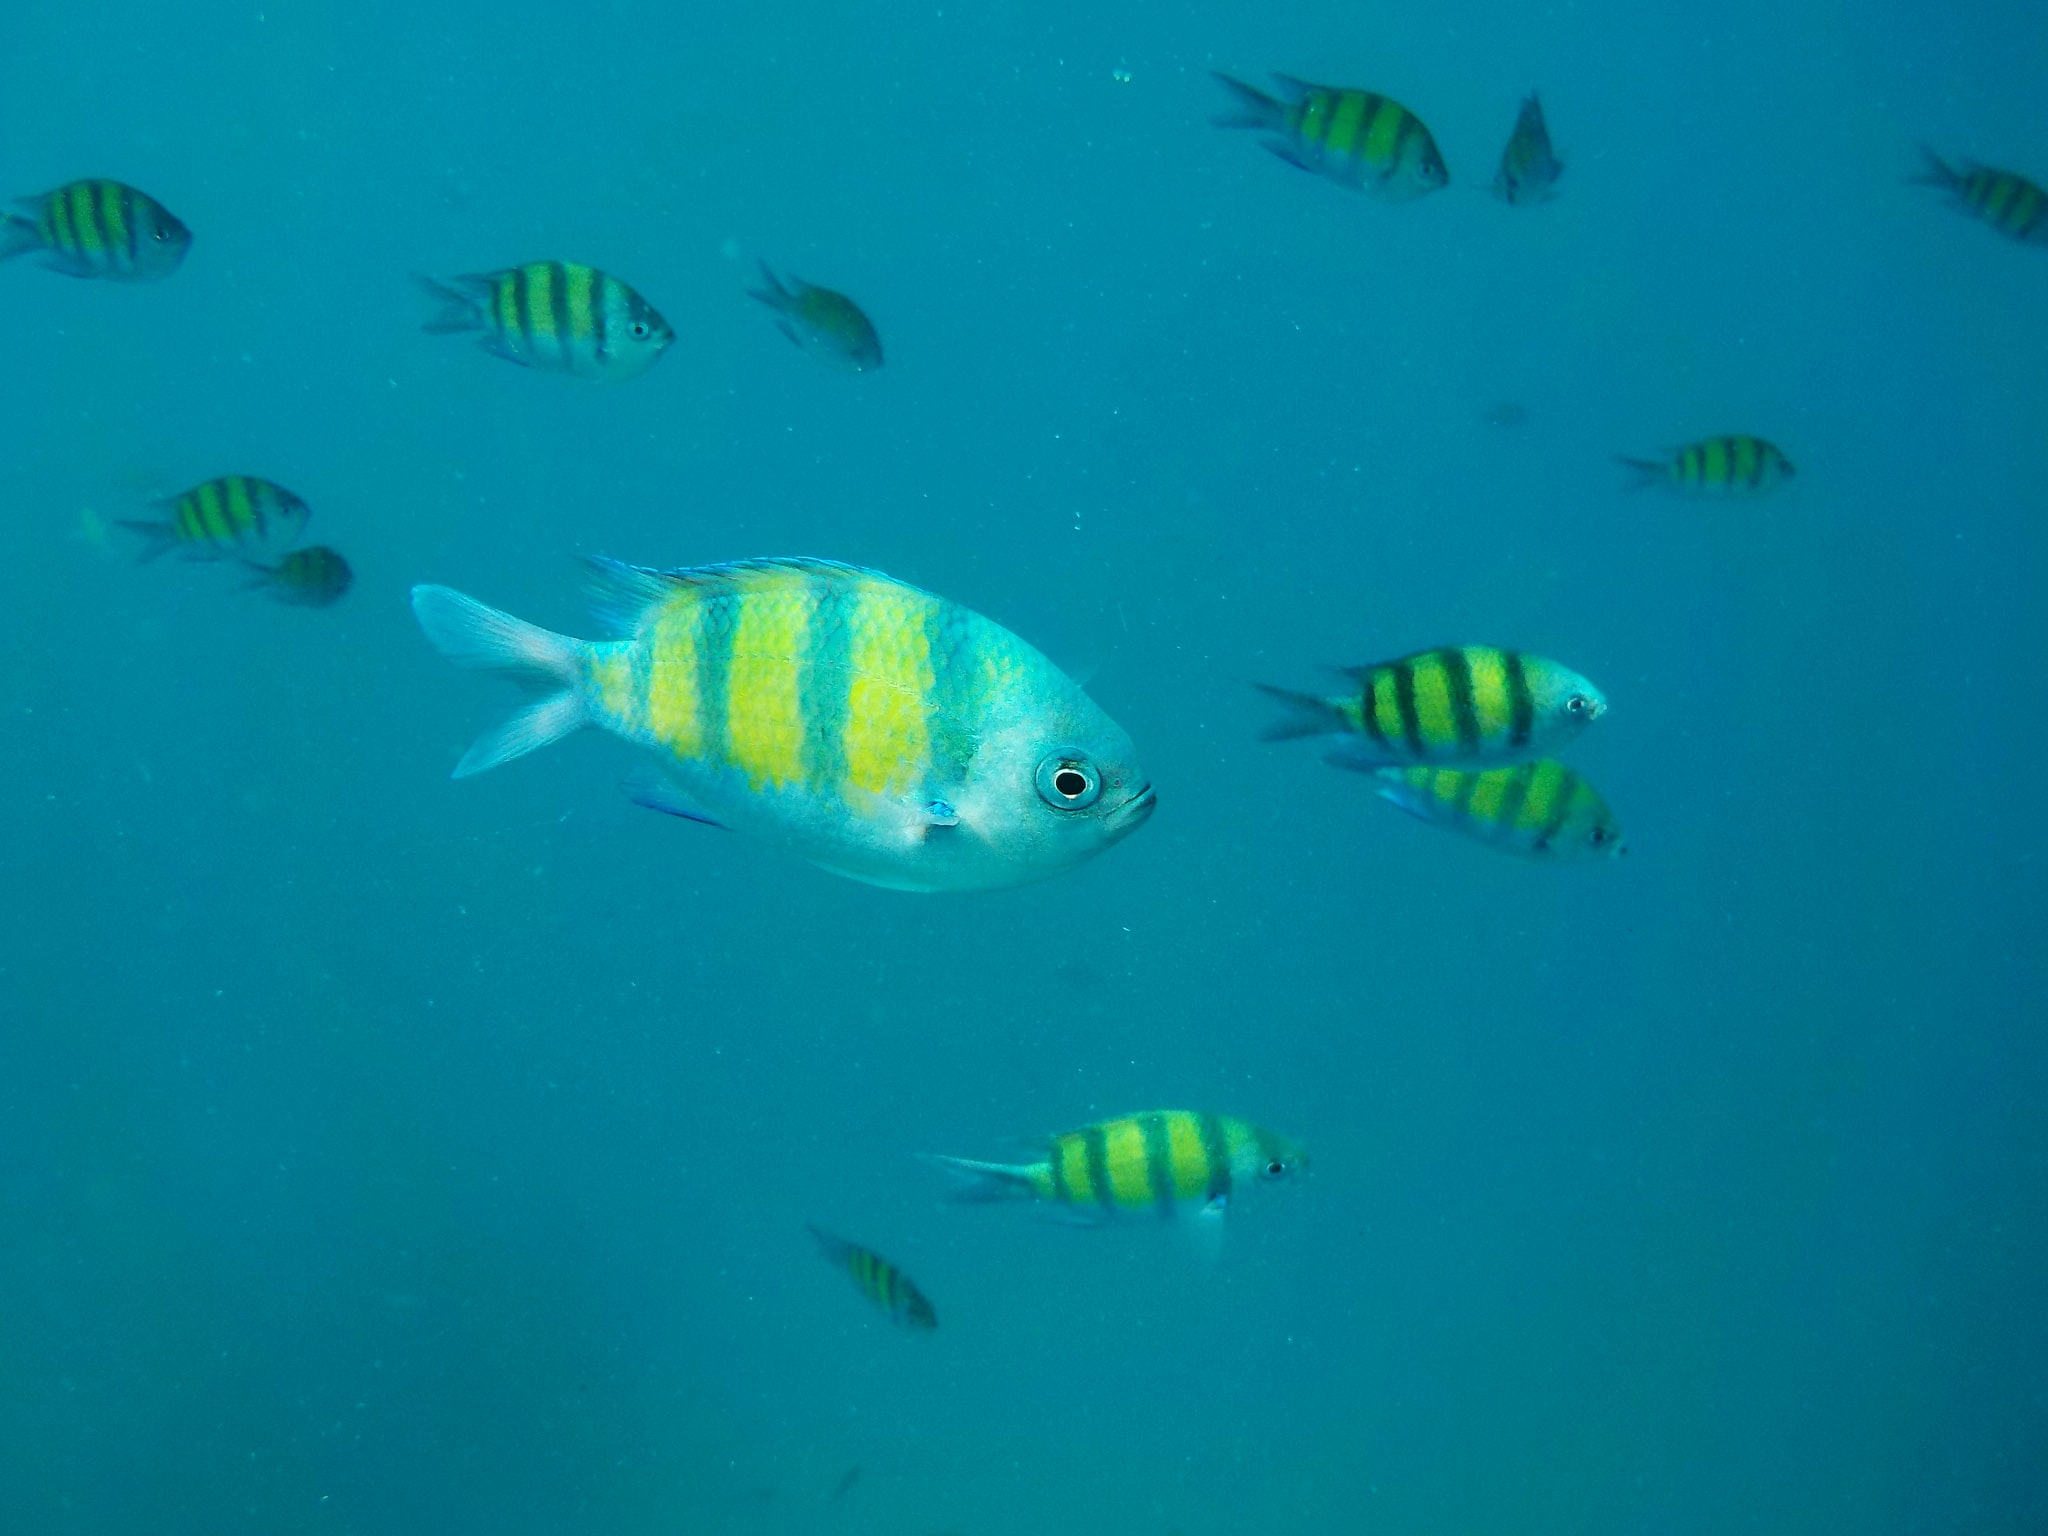 shoal of yellow and silver fishes